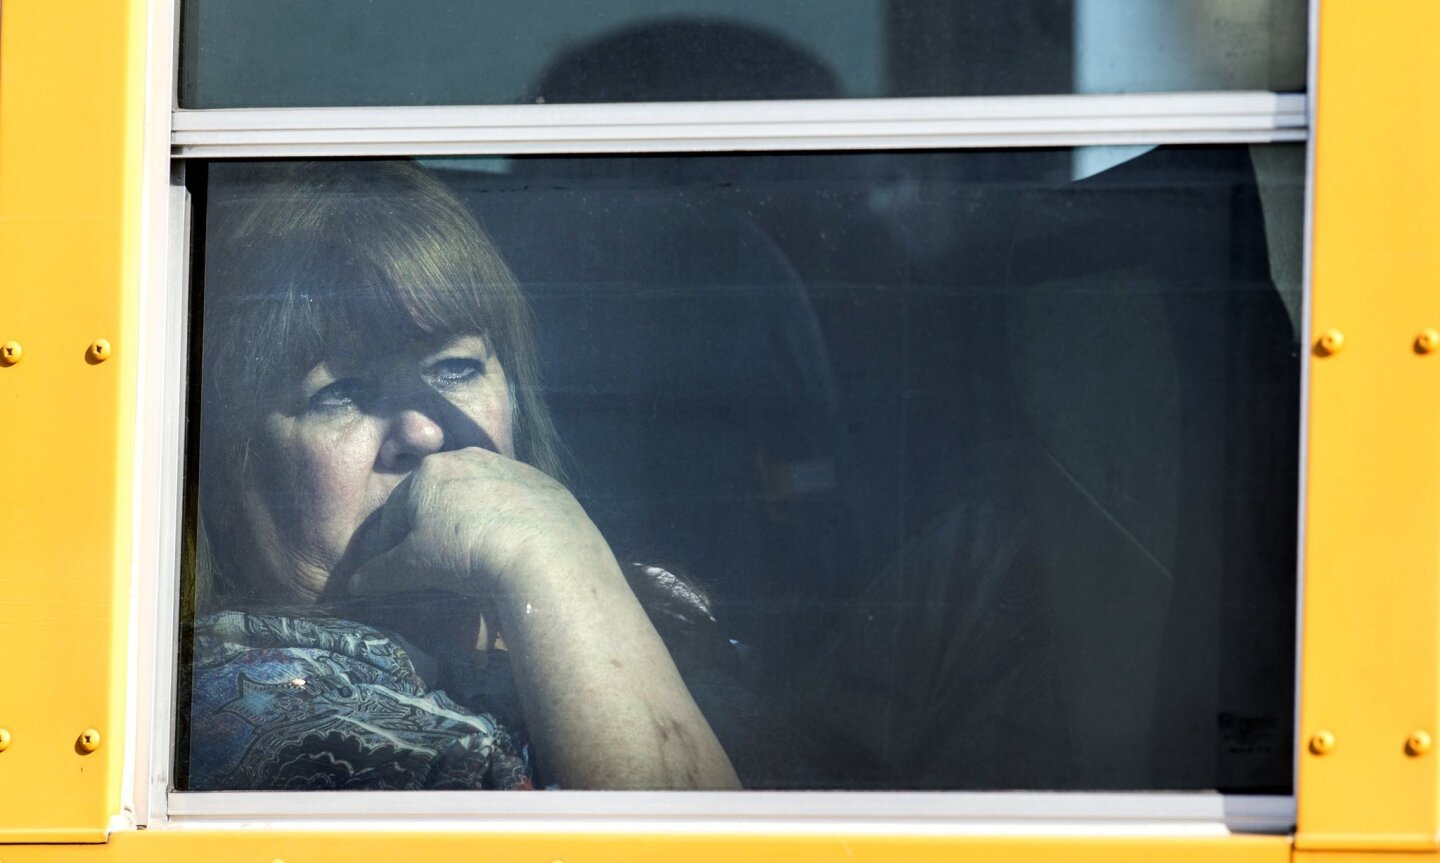 A woman looks out the window as she and others leave in school buses as they evacuate a site in San Bernardino, Calif., Wednesday, Dec. 2, 2015. Multiple attackers opened fire on a banquet at a social services center for the disabled in San Bernardino on Wednesday, killing multiple people and sendi